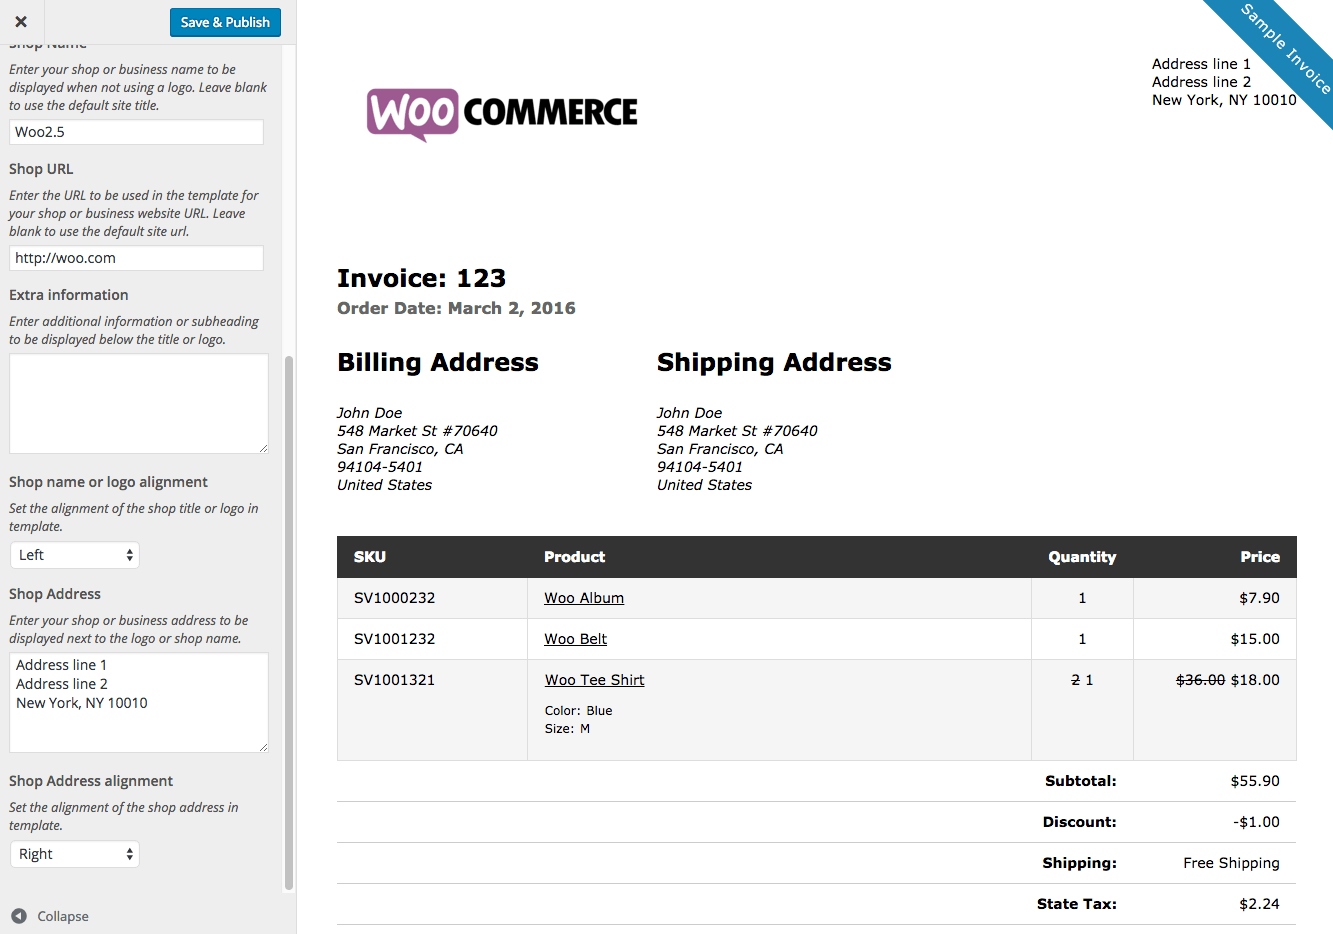 Usdgus  Inspiring Print Invoices Amp Packing Lists  Woocommerce With Foxy Woocommerce Print Invoices  Packing Lists Customizer With Beautiful Writing Invoices Also Invoice Finance Brokers In Addition Sale Invoices And  Way Matching Of Invoices As Well As Msrp Price Vs Invoice Price Additionally Custom Invoice Format From Woocommercecom With Usdgus  Foxy Print Invoices Amp Packing Lists  Woocommerce With Beautiful Woocommerce Print Invoices  Packing Lists Customizer And Inspiring Writing Invoices Also Invoice Finance Brokers In Addition Sale Invoices From Woocommercecom